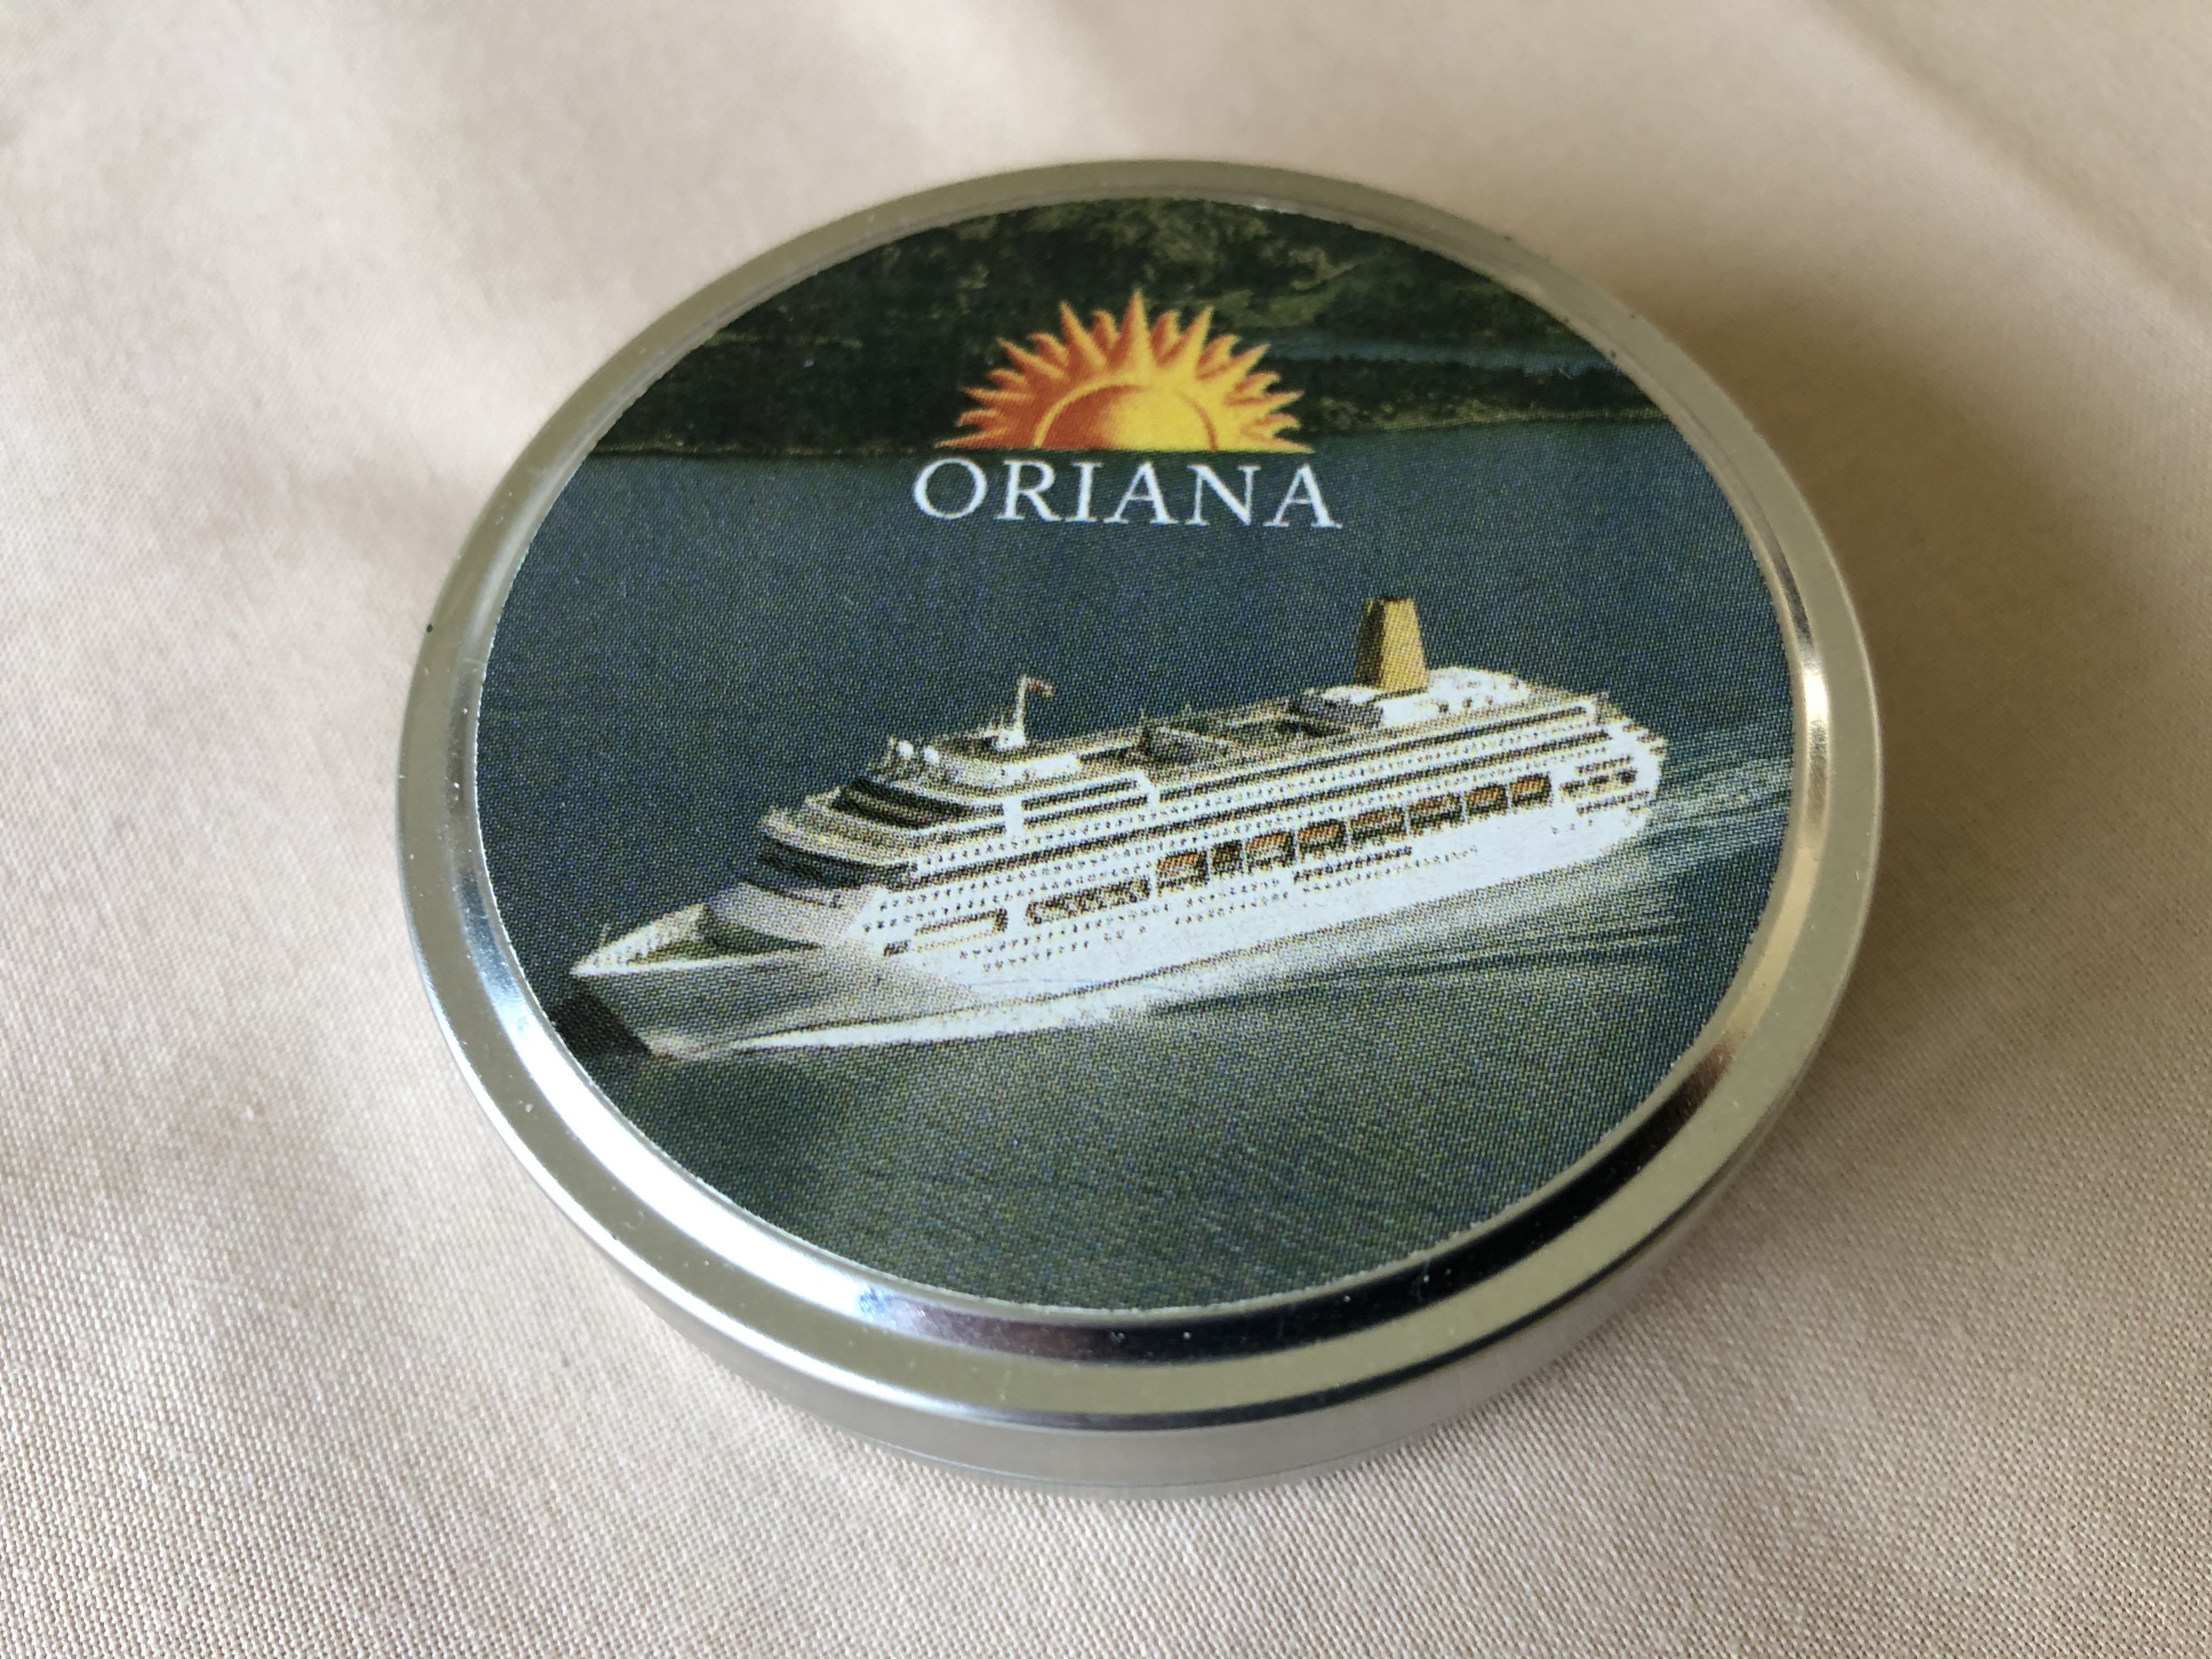 SOUVENIR TIN FROM THE ORIGINAL OLD ORIENT LINE VESSEL THE ORIANA